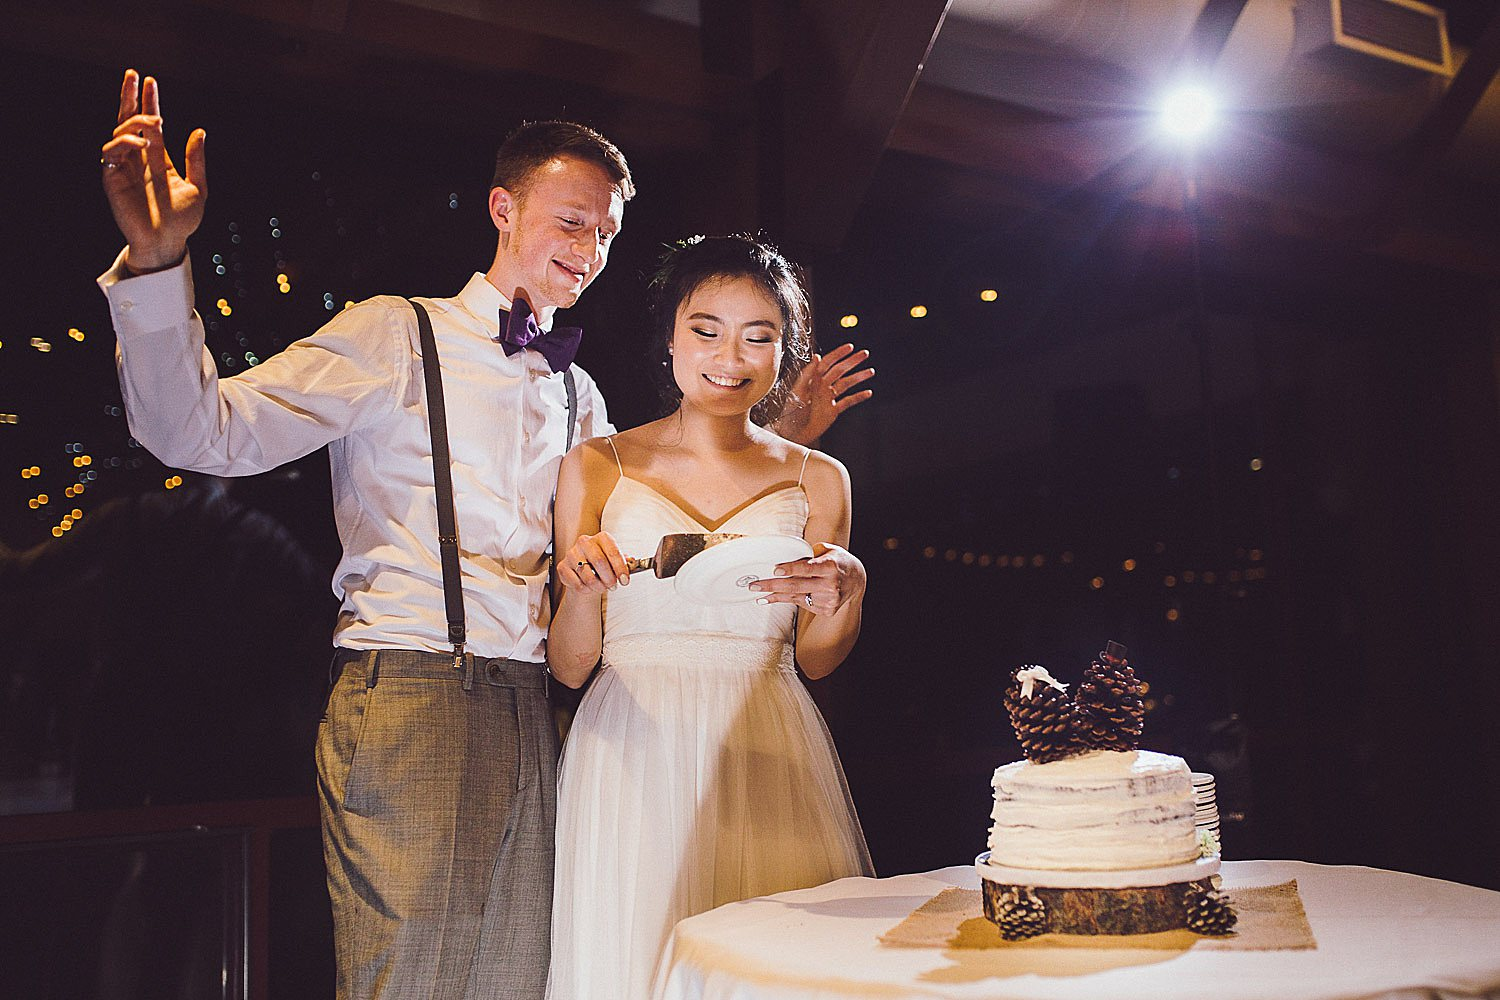 Angel and Tim cut their wedding cake at the DAC